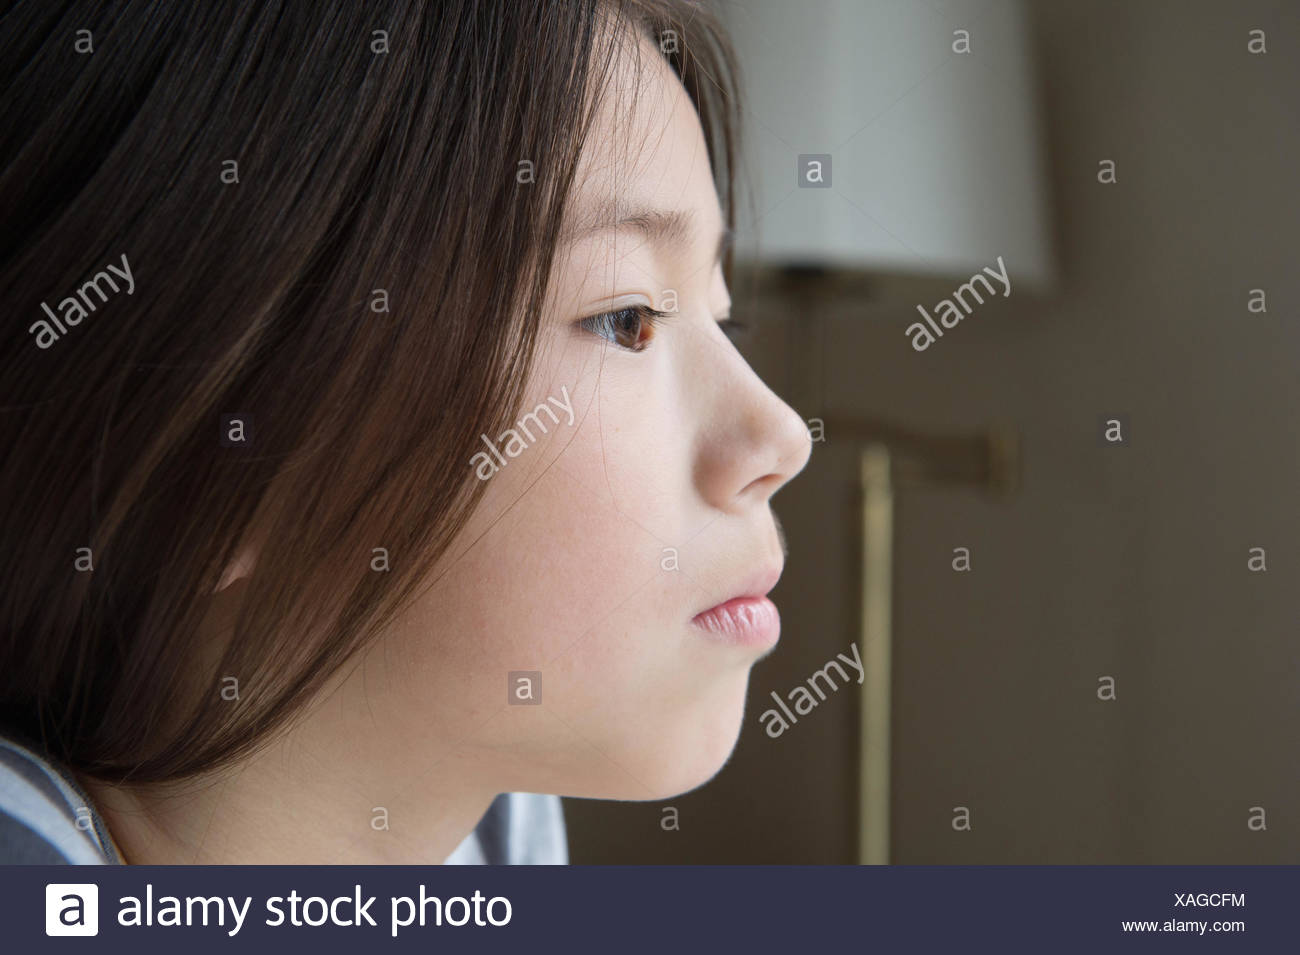 Close up portrait of serious girl - Stock Image